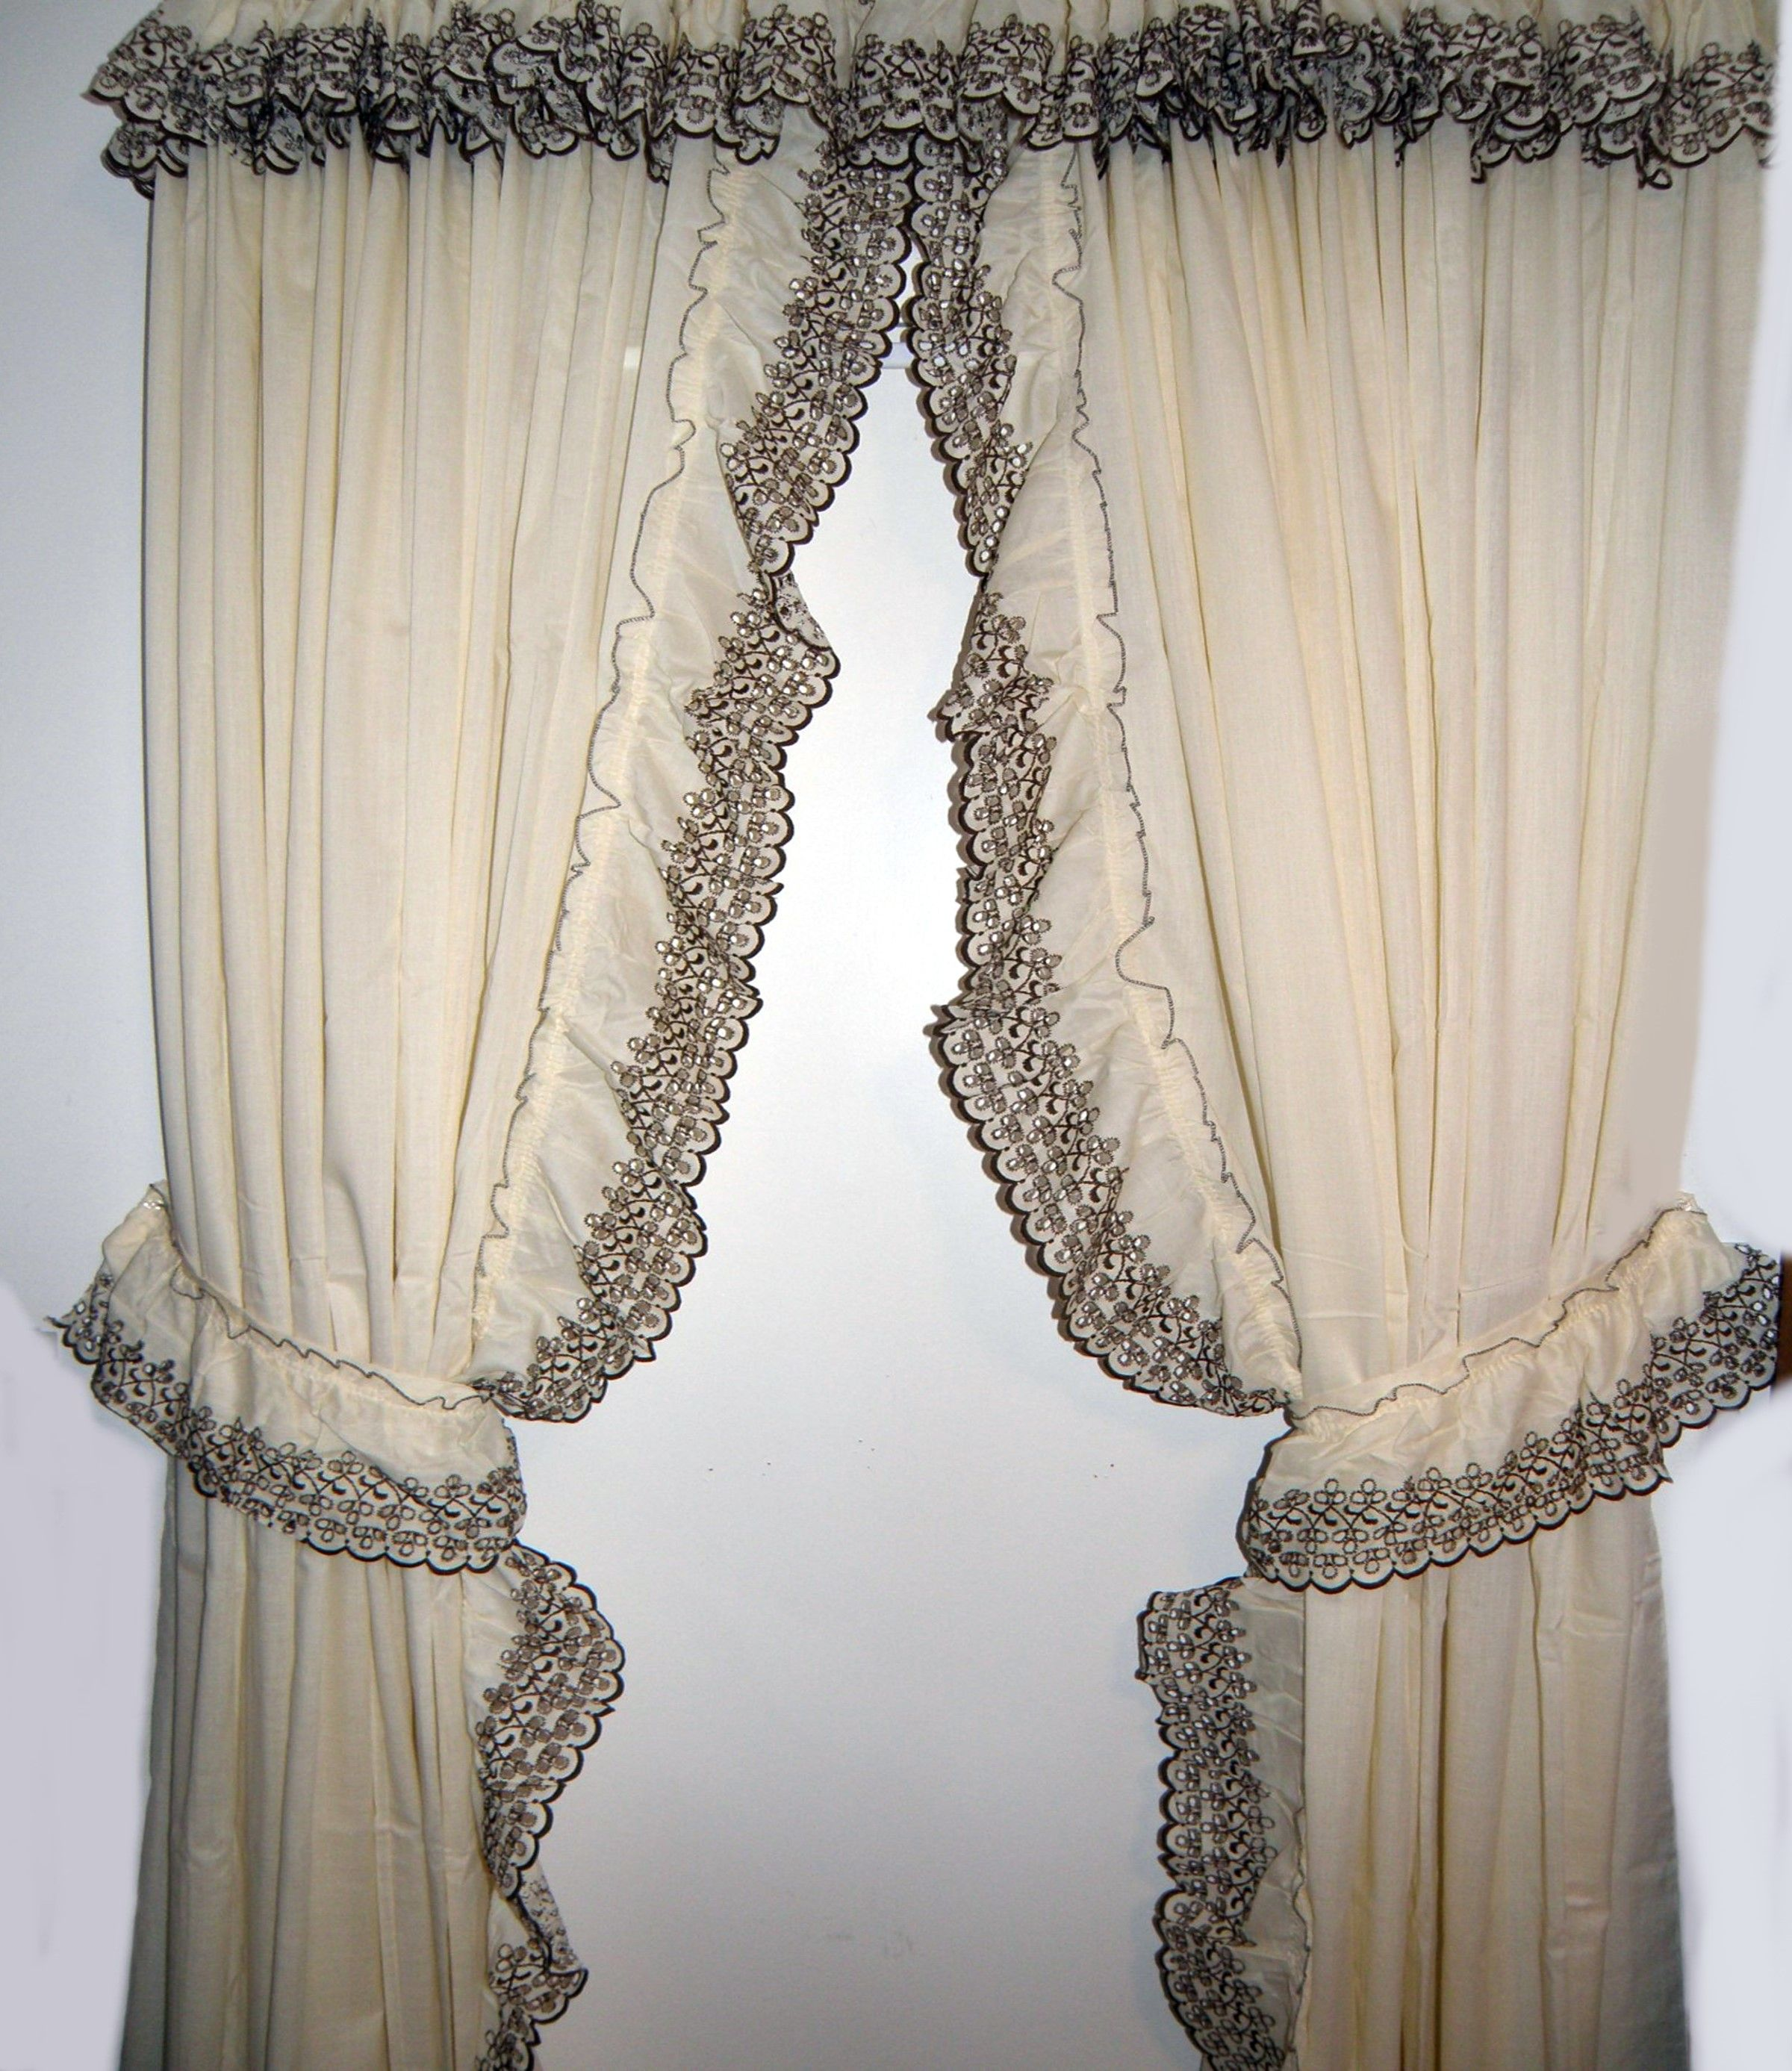 Country Style Look With Ruffled Curtains Ruffle Curtains